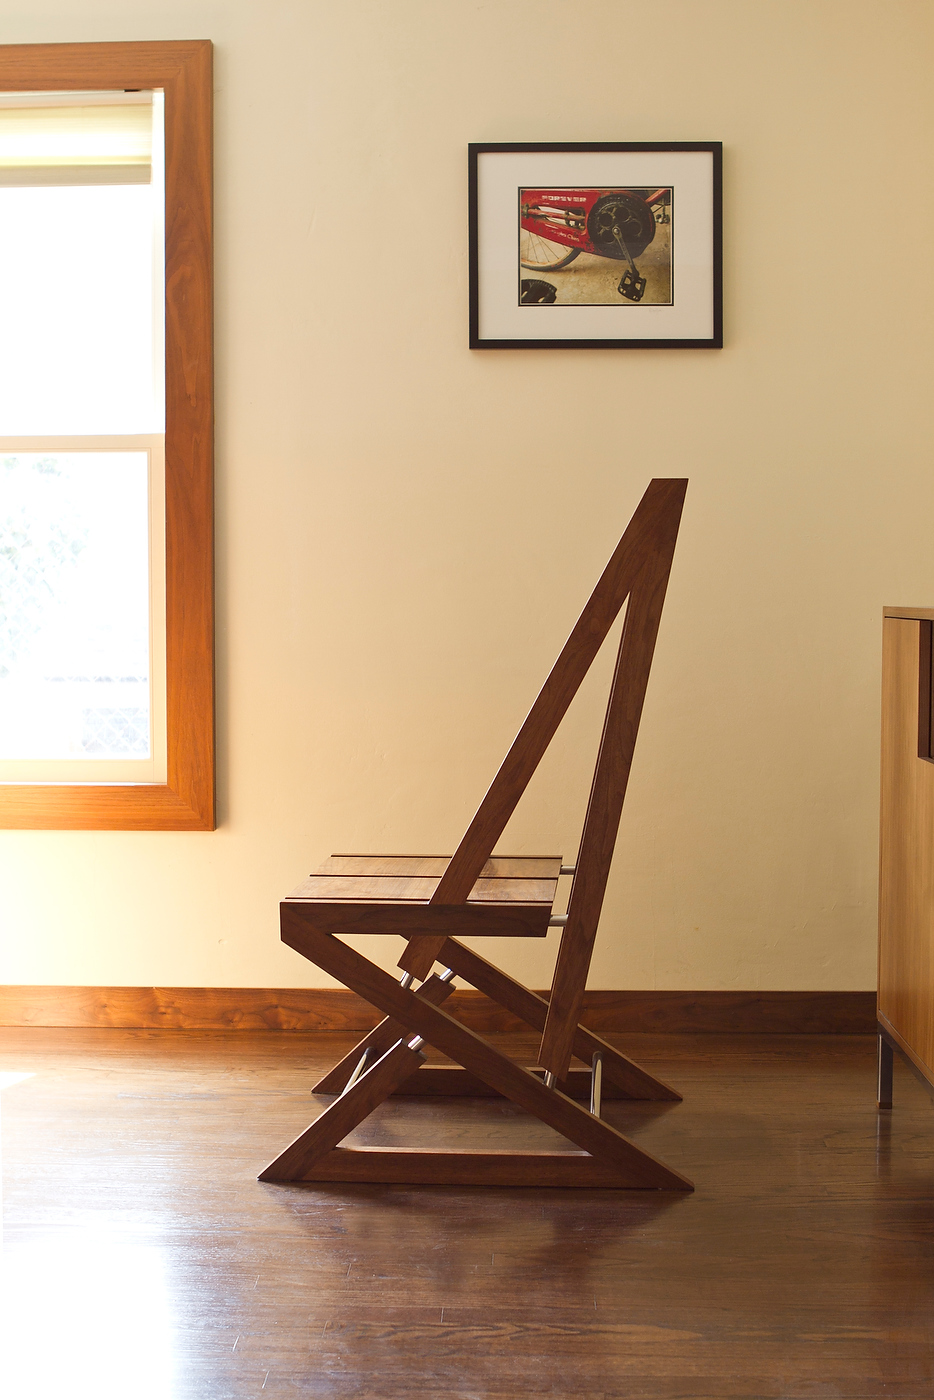 furniture-chair-thing-01.jpg